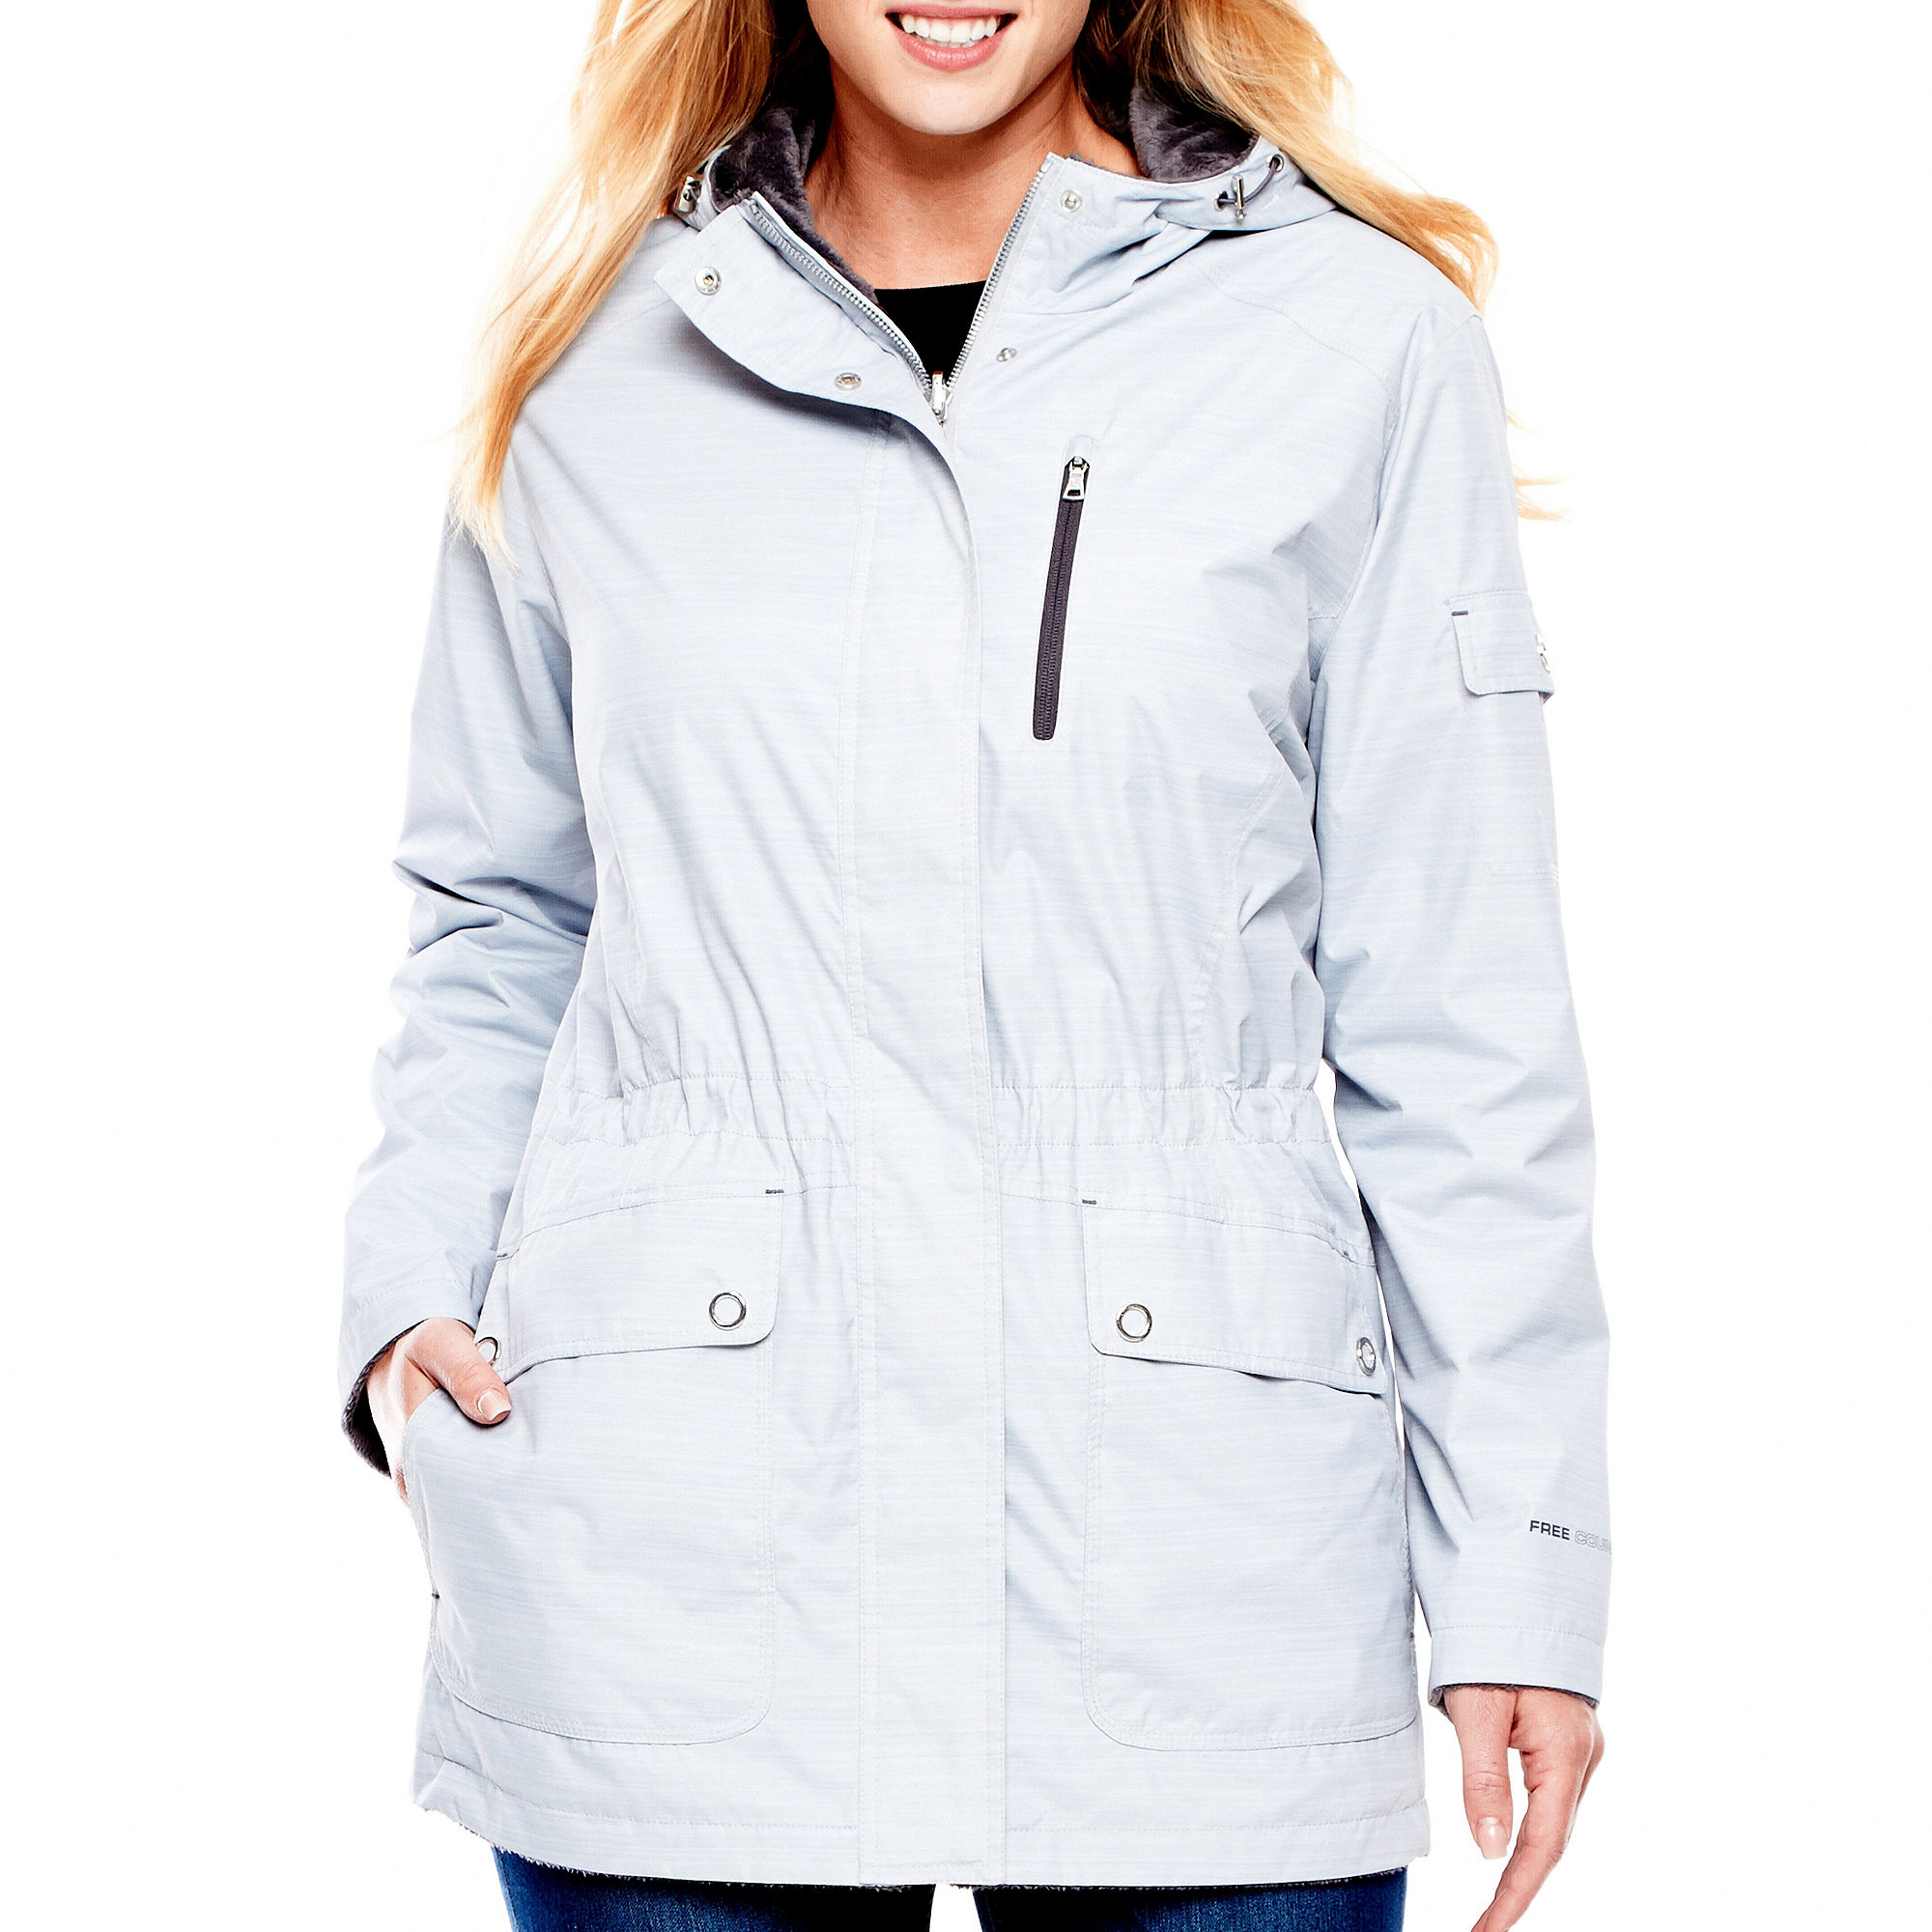 bc7c4a3143b UPC 790437215091 product image for Free Country Radiance Reversible Jacket  - Plus Size